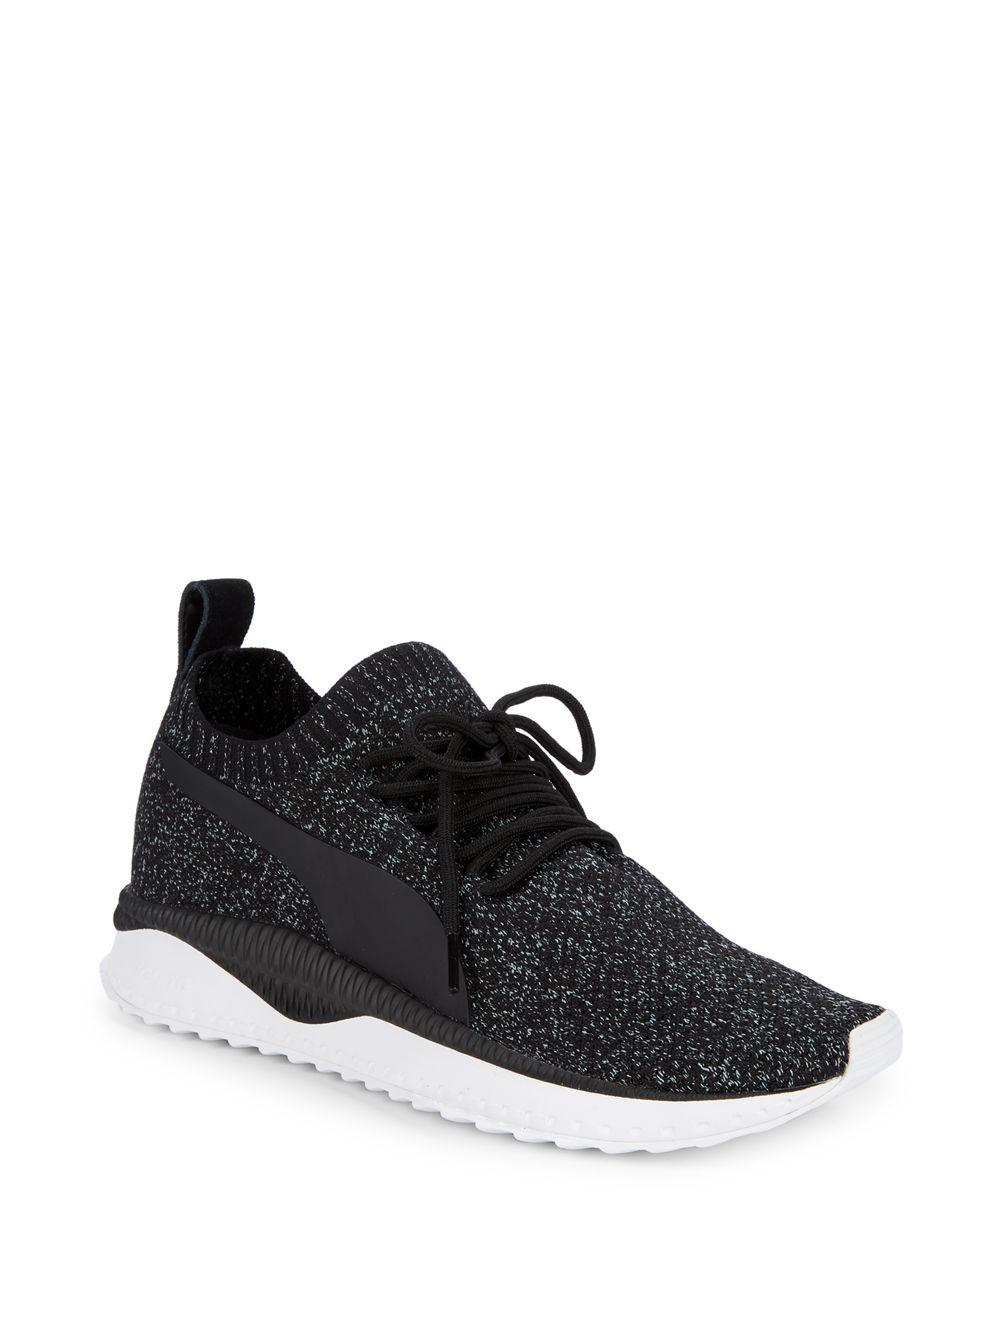 PUMA Tsugi Apex Evoknit Sneakers in Black for Men - Lyst 0be17661d